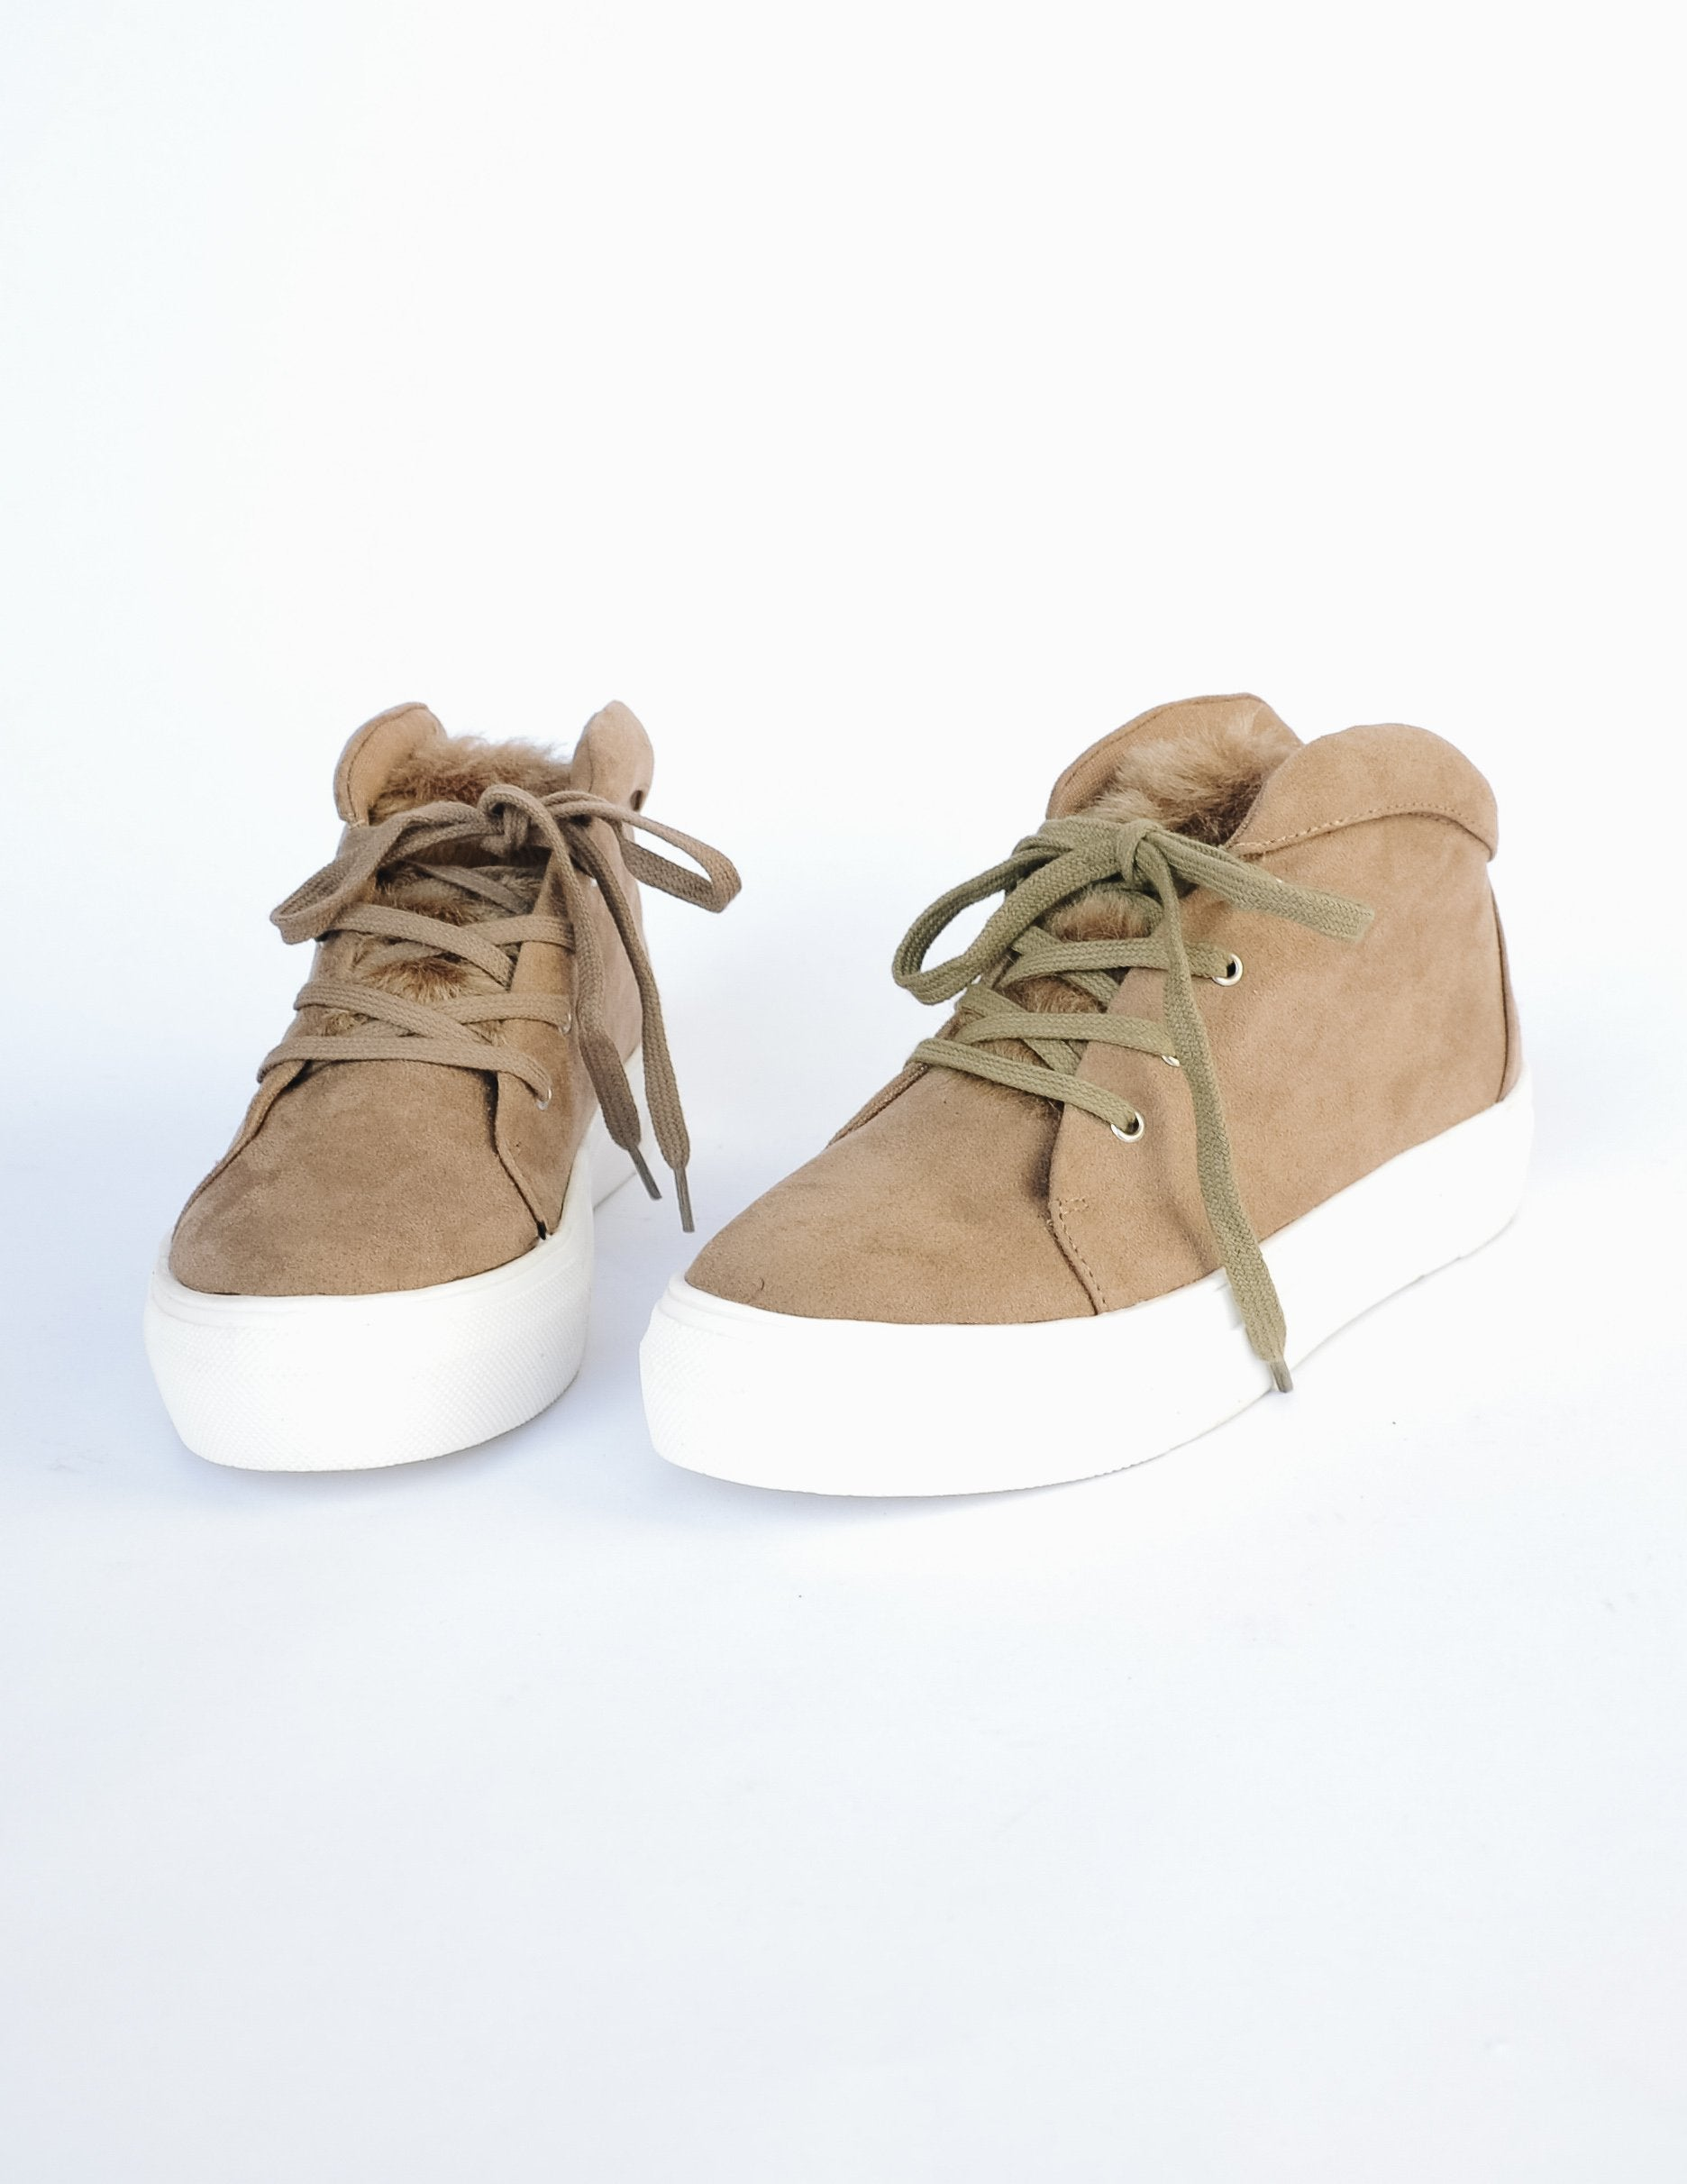 M.I.A. GONE SOFT SNEAKER - Taupe - Elle Bleu Shoe Boutique